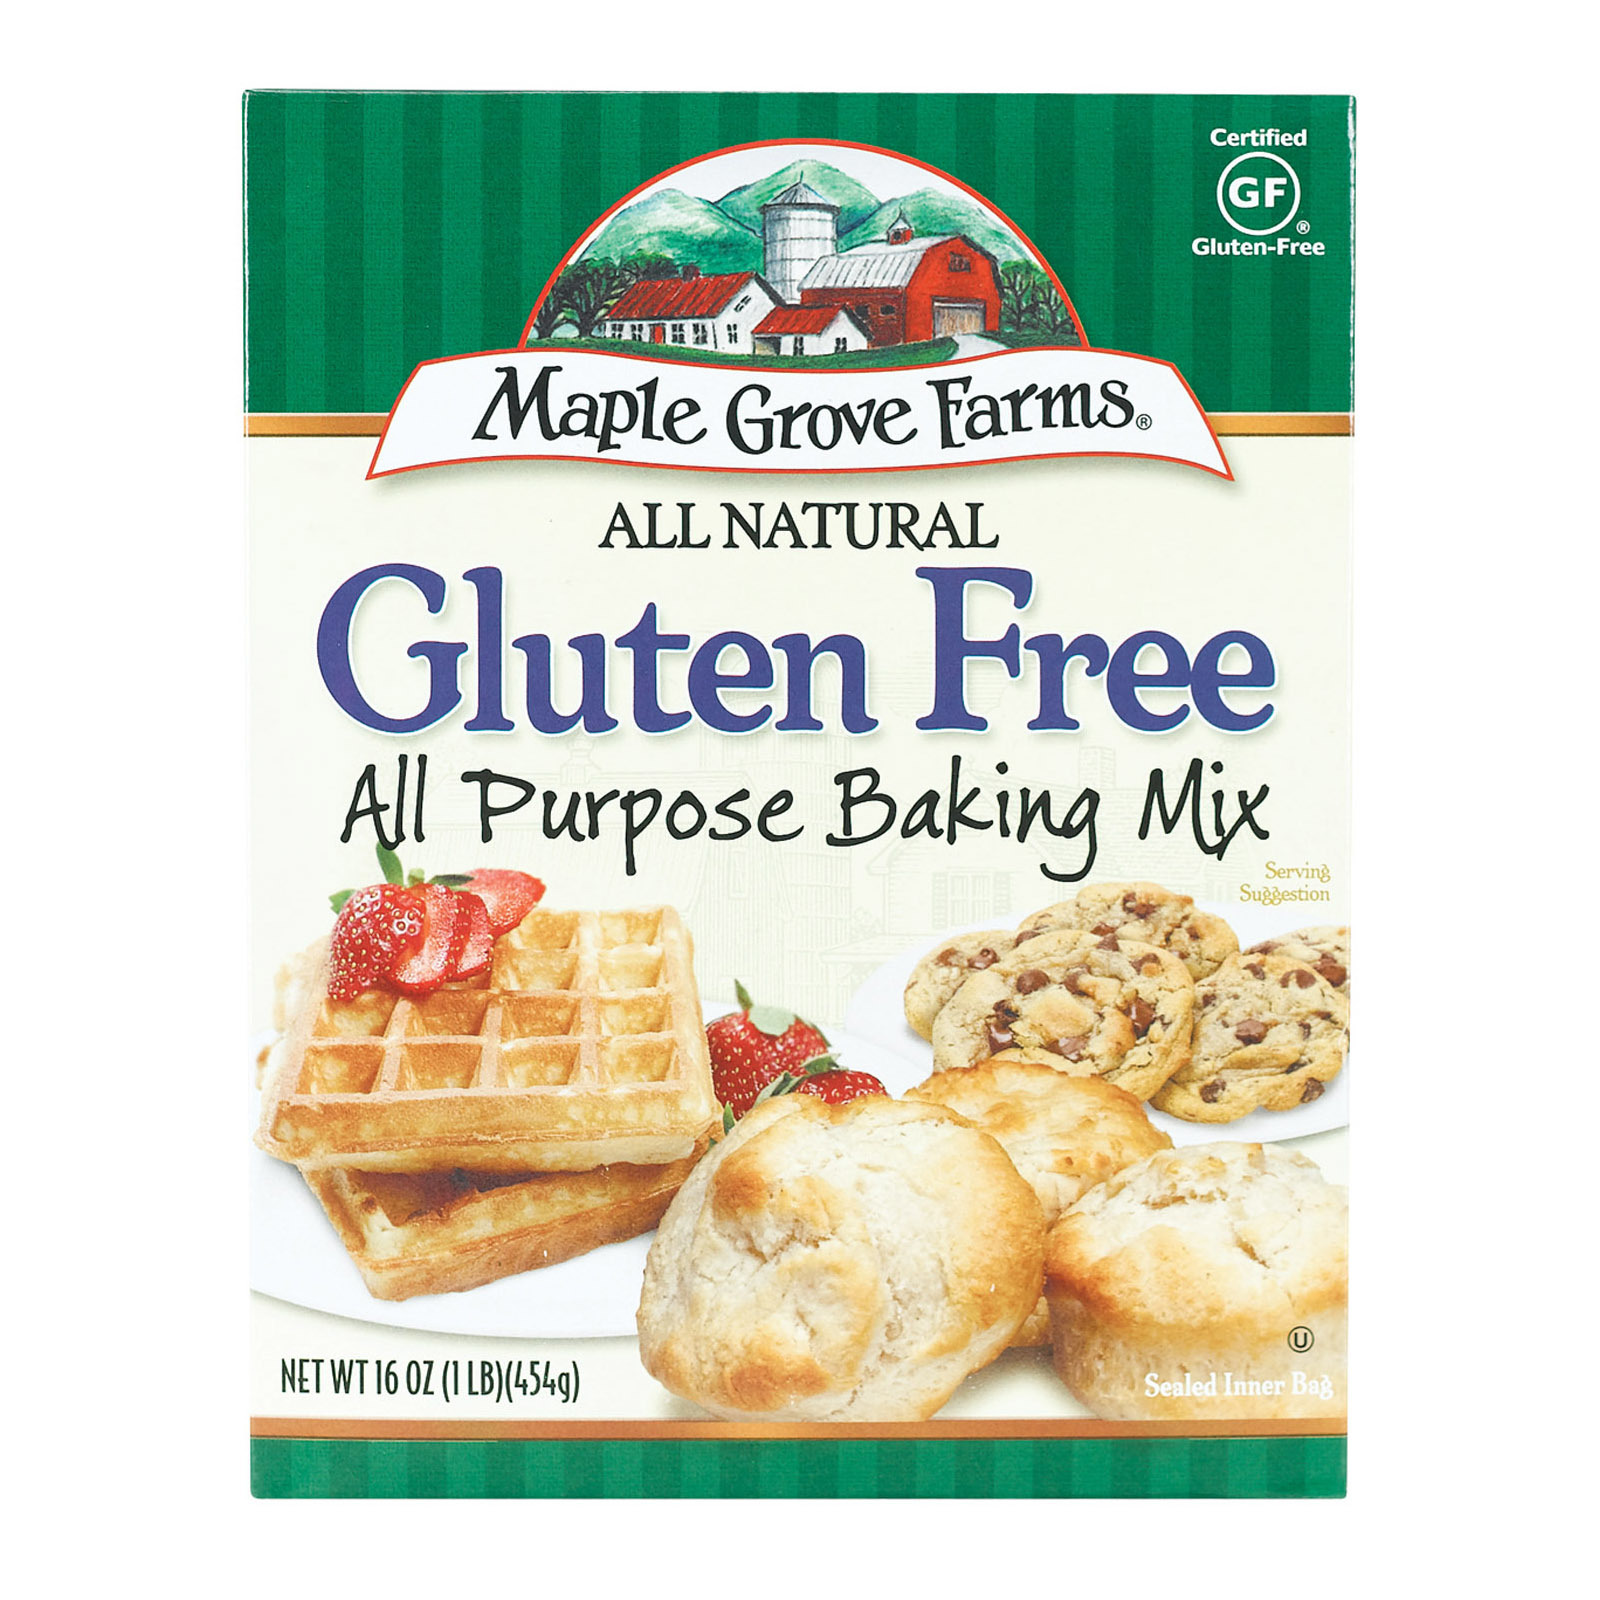 Maple Grove Farms Baking Mix - All Purpose - Gluten Free - Case of 8 - 16 oz